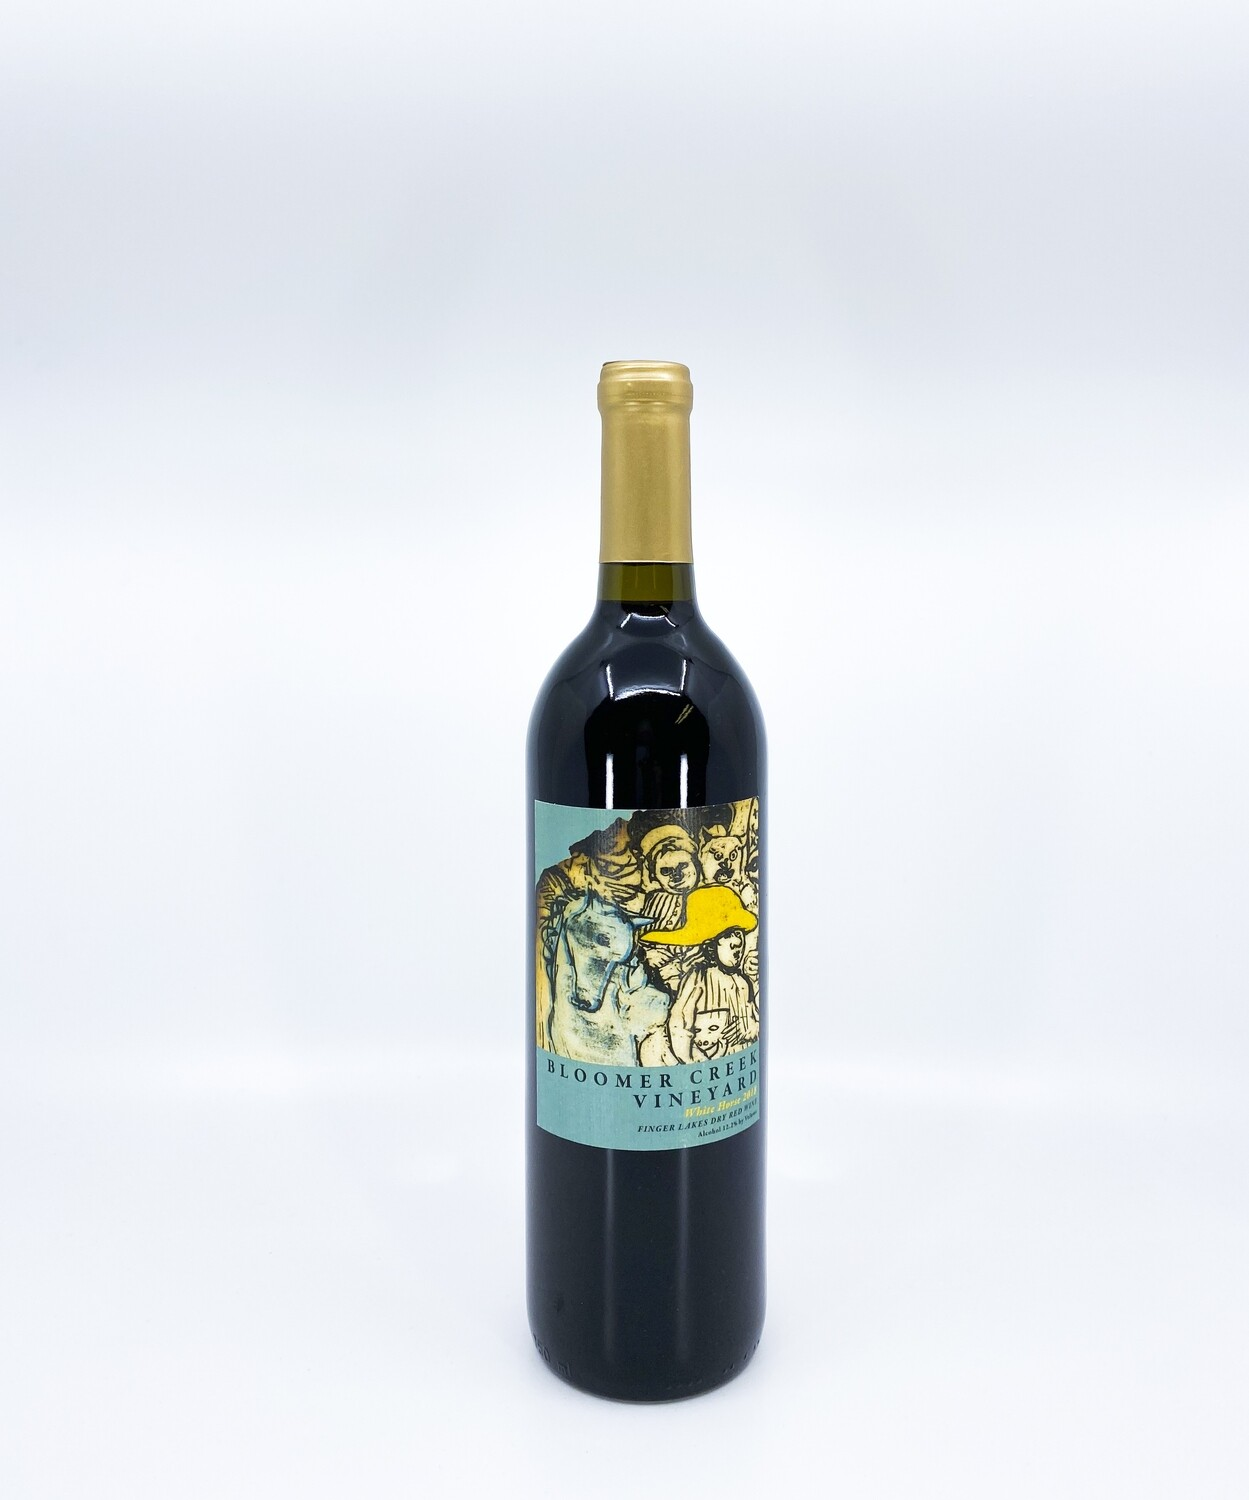 Bloomer Creek Red Blend (White Horse) 2018